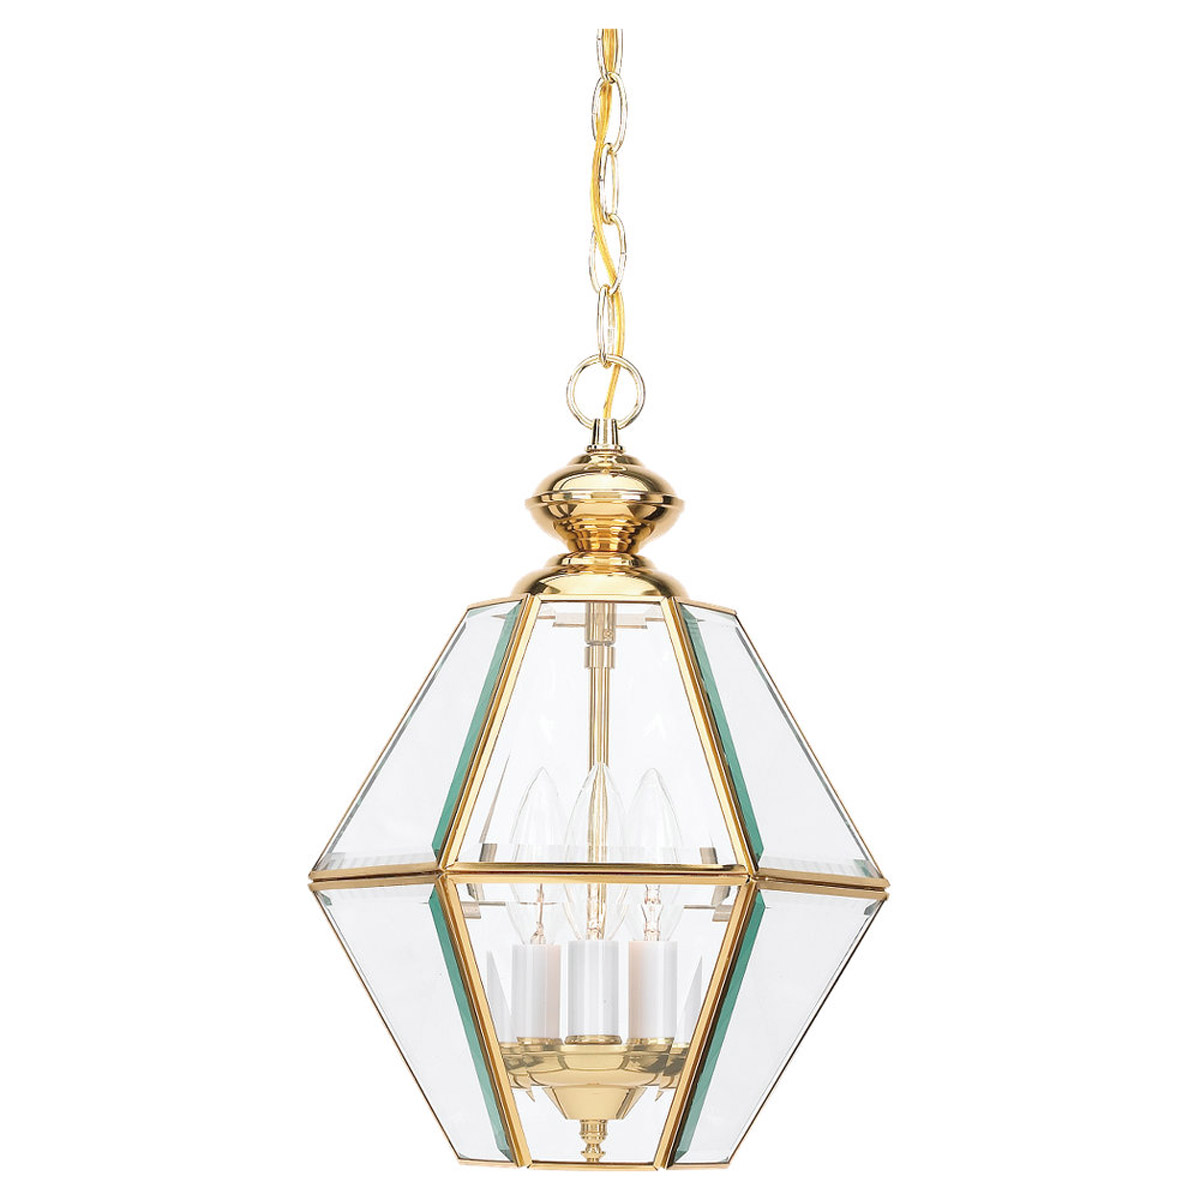 Sea Gull Lighting Grandover 3 Light Foyer Pendant in Polished Brass 5116-02